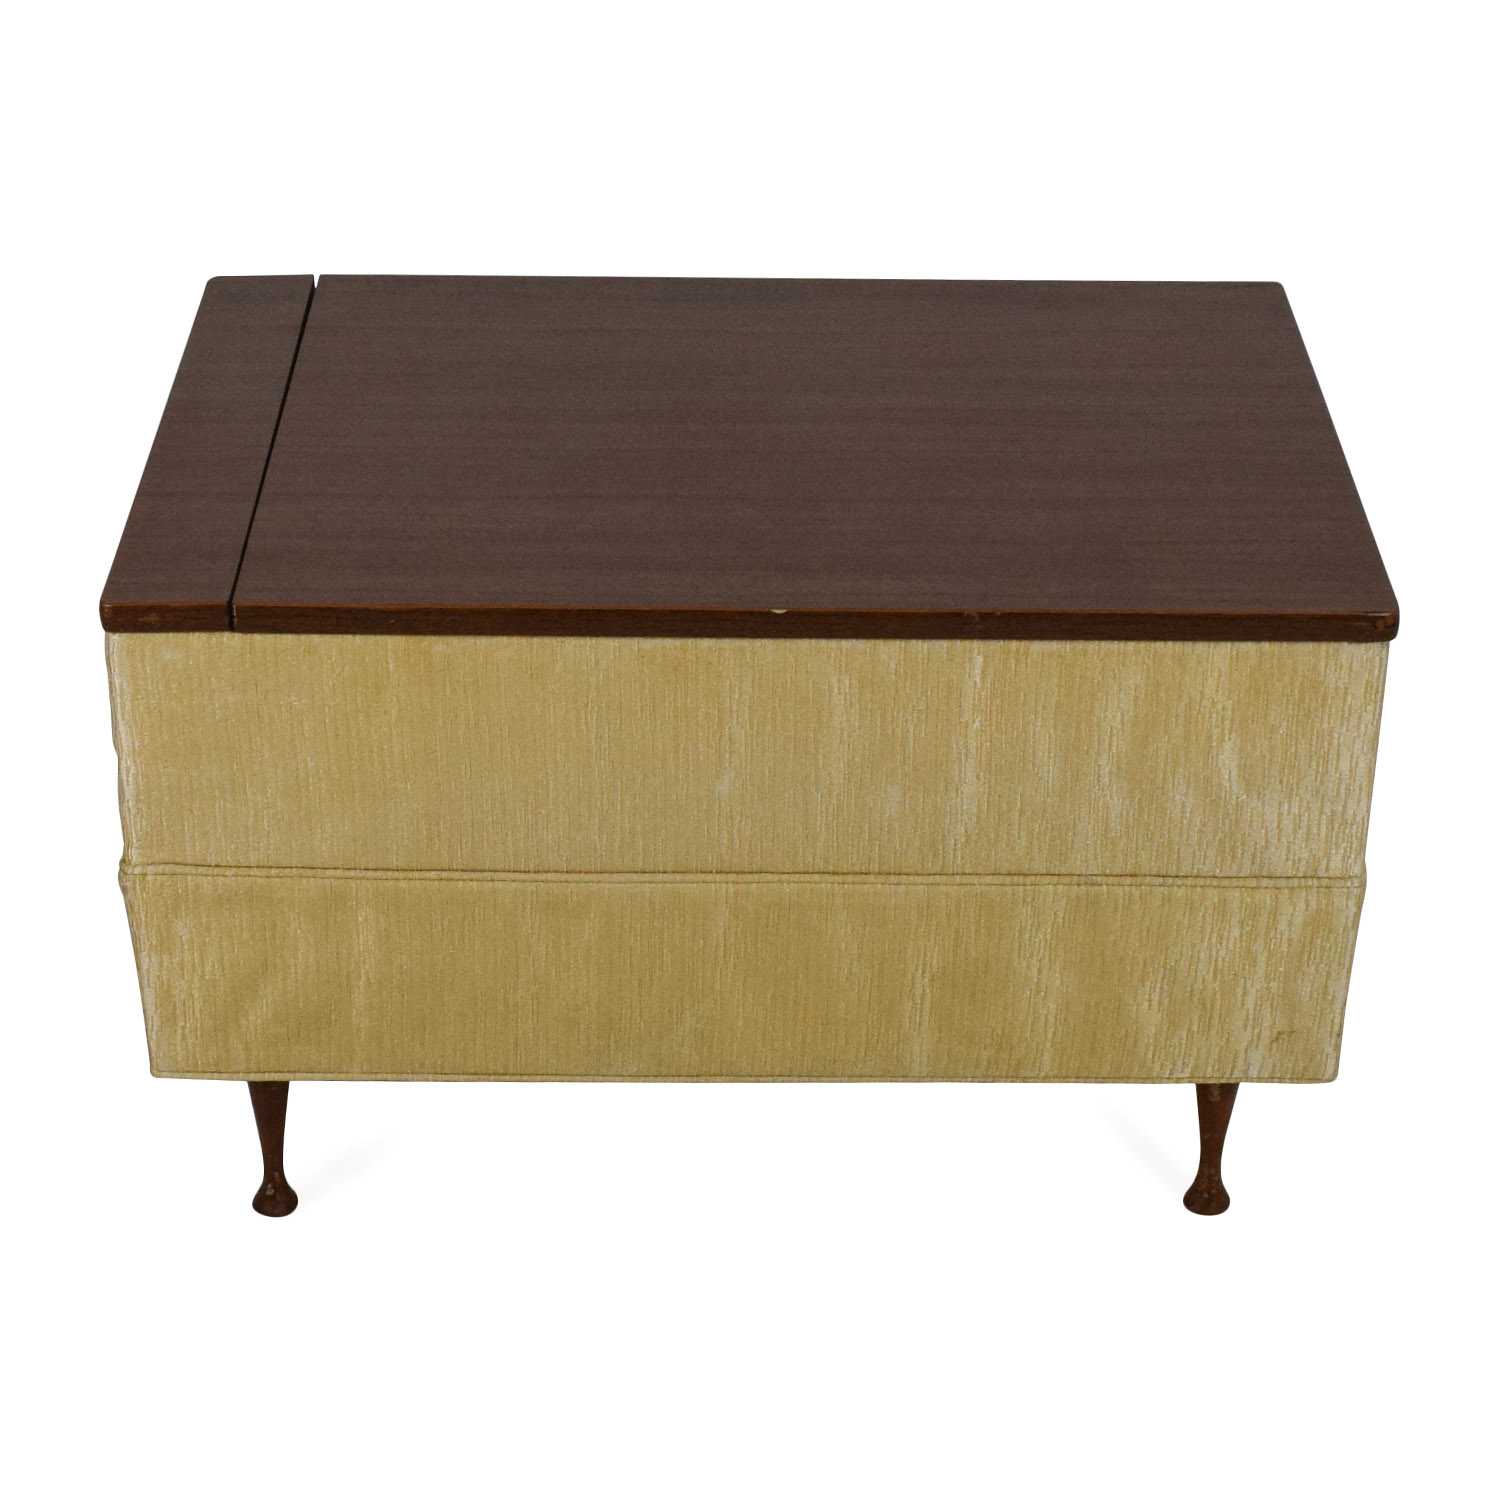 buy Vintage Ottoman Coffee Table with Storage